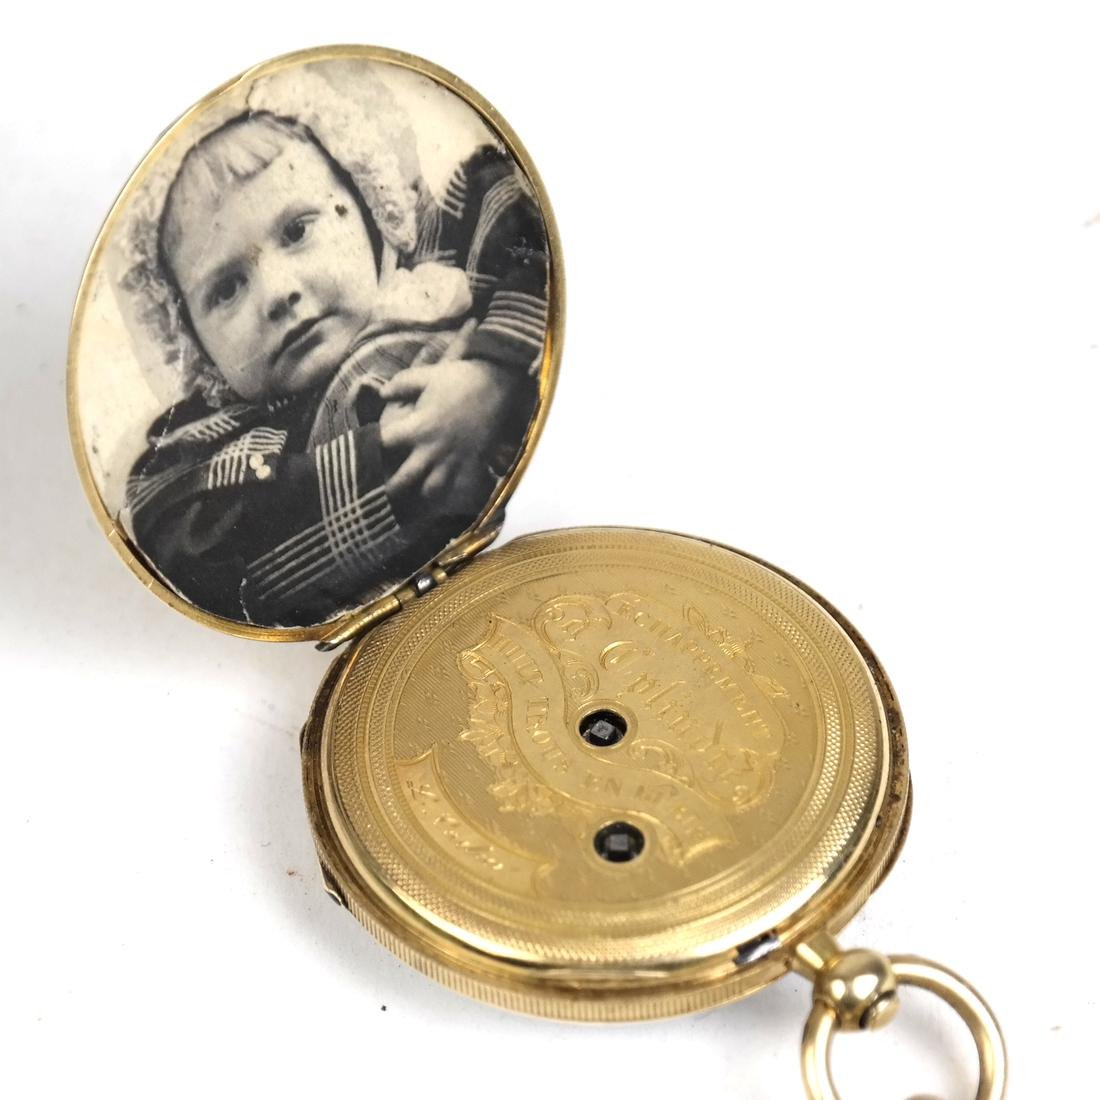 14k Yellow Gold Pocket Watch - 4